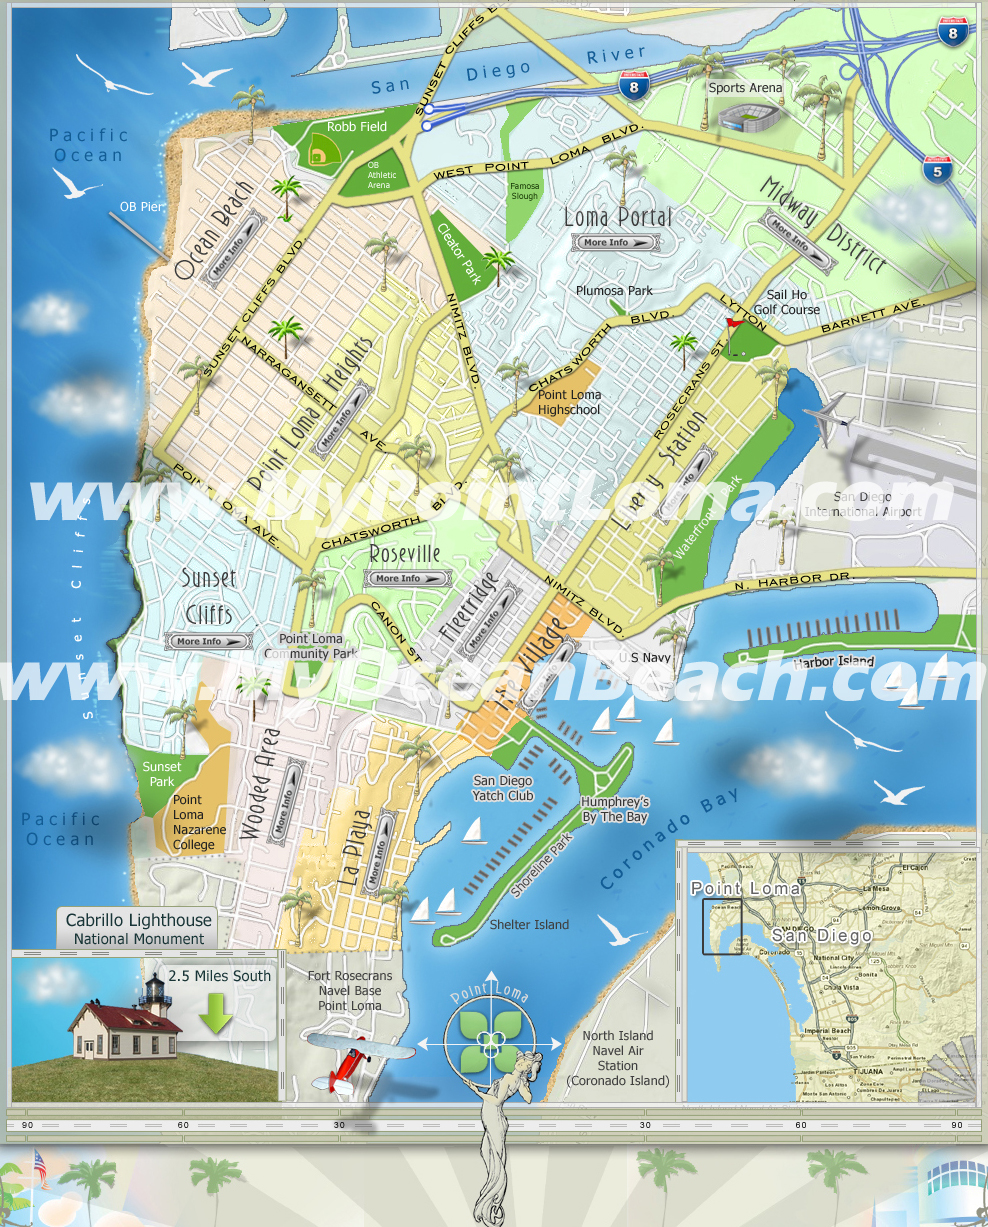 Map of Point Loma & Ocean Beach Neighborhoods